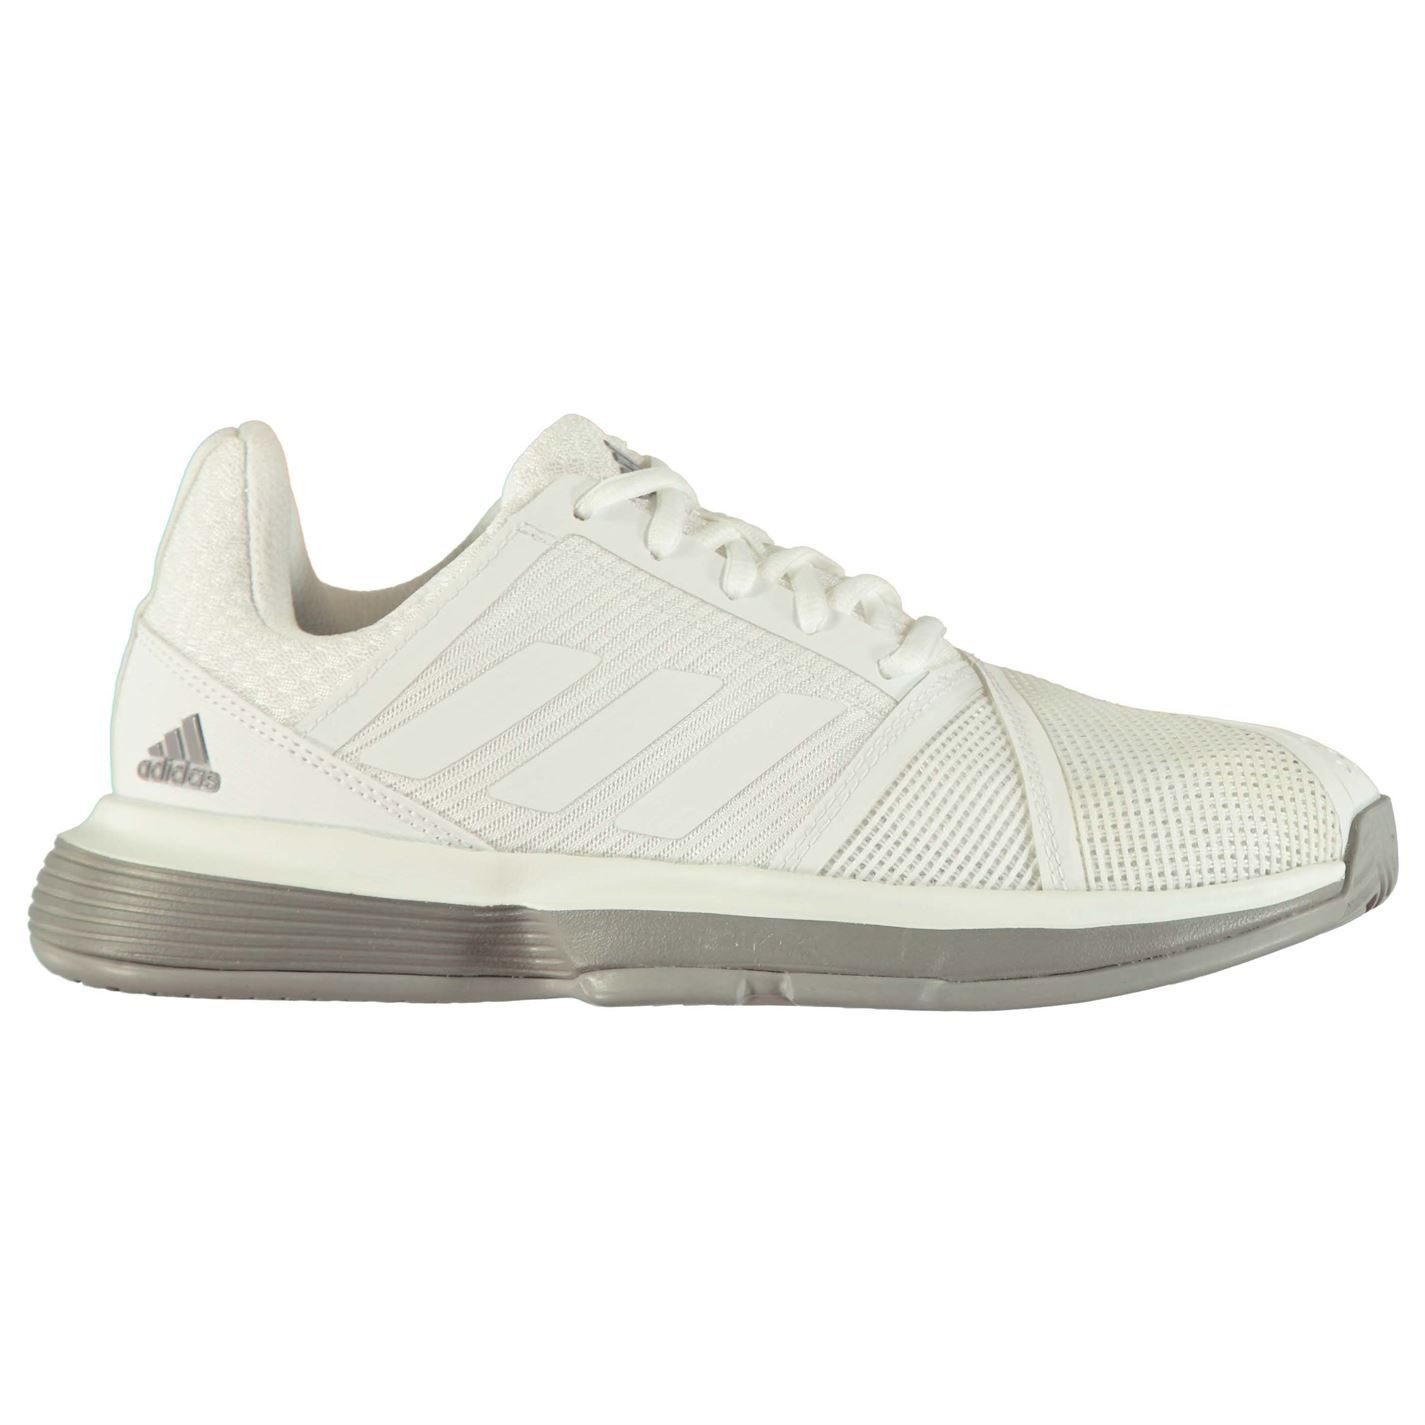 Details about Adidas courtjam Bounce Womens Tennis Shoes White/Grey Ladies  Sports- show original title